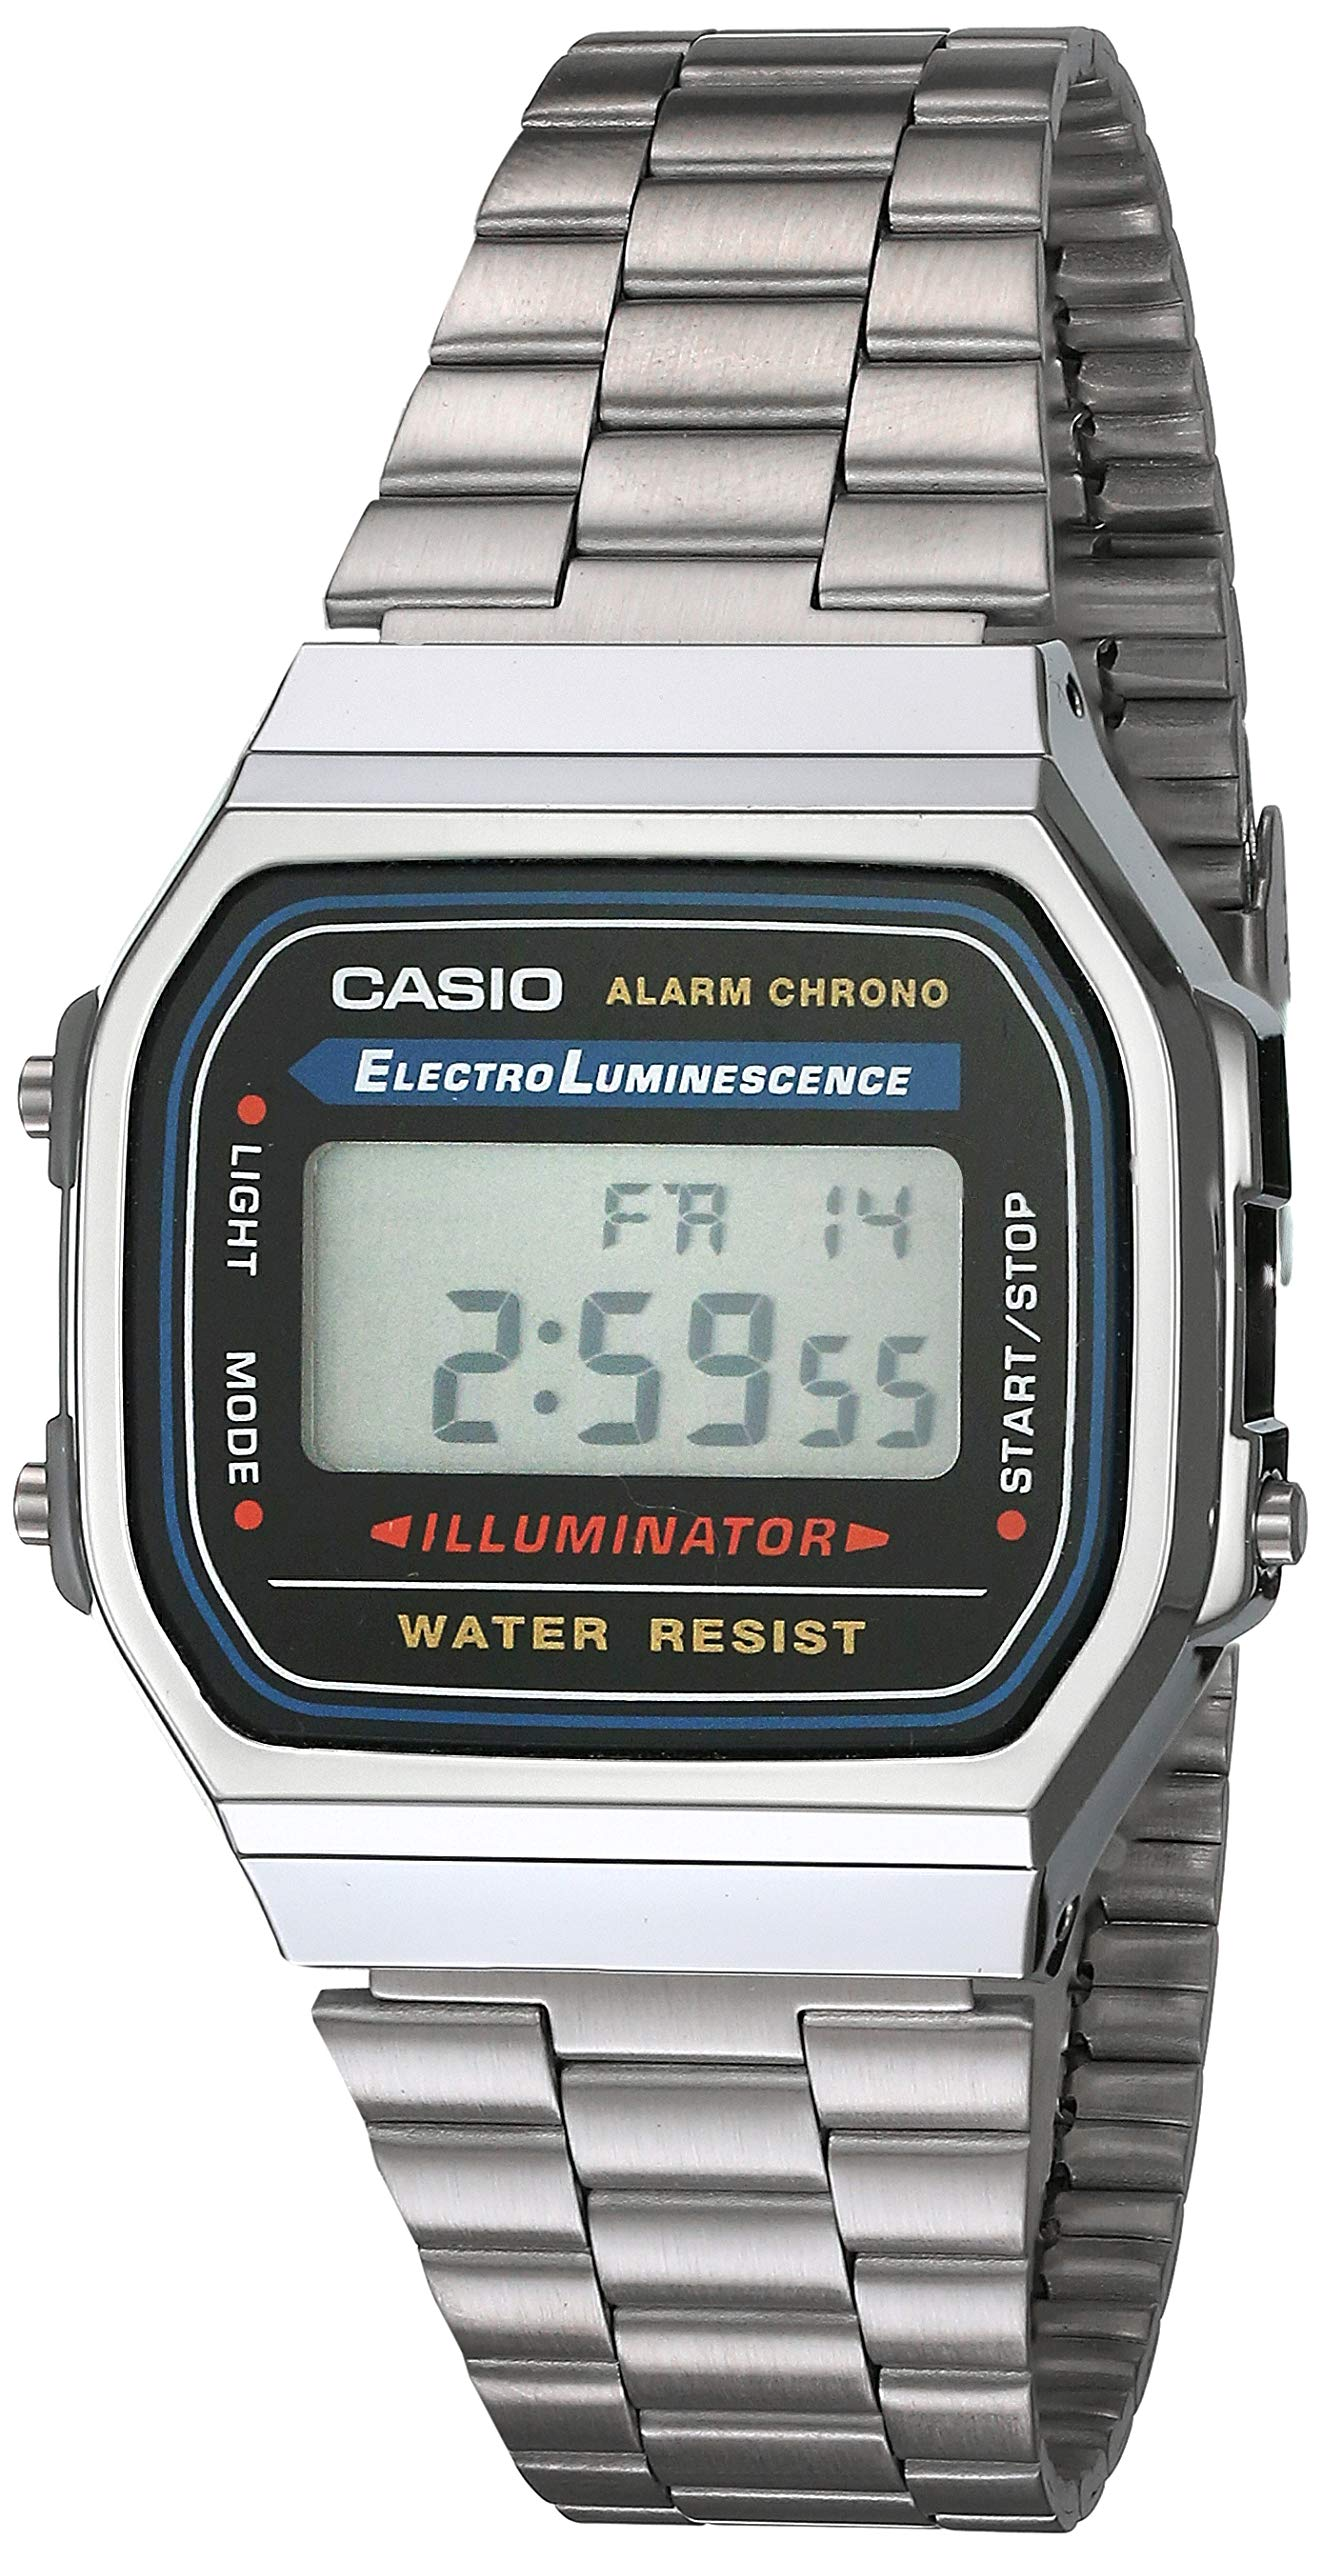 Casio Men's Vintage A168WA-1 Electro Luminescence Watch by Casio